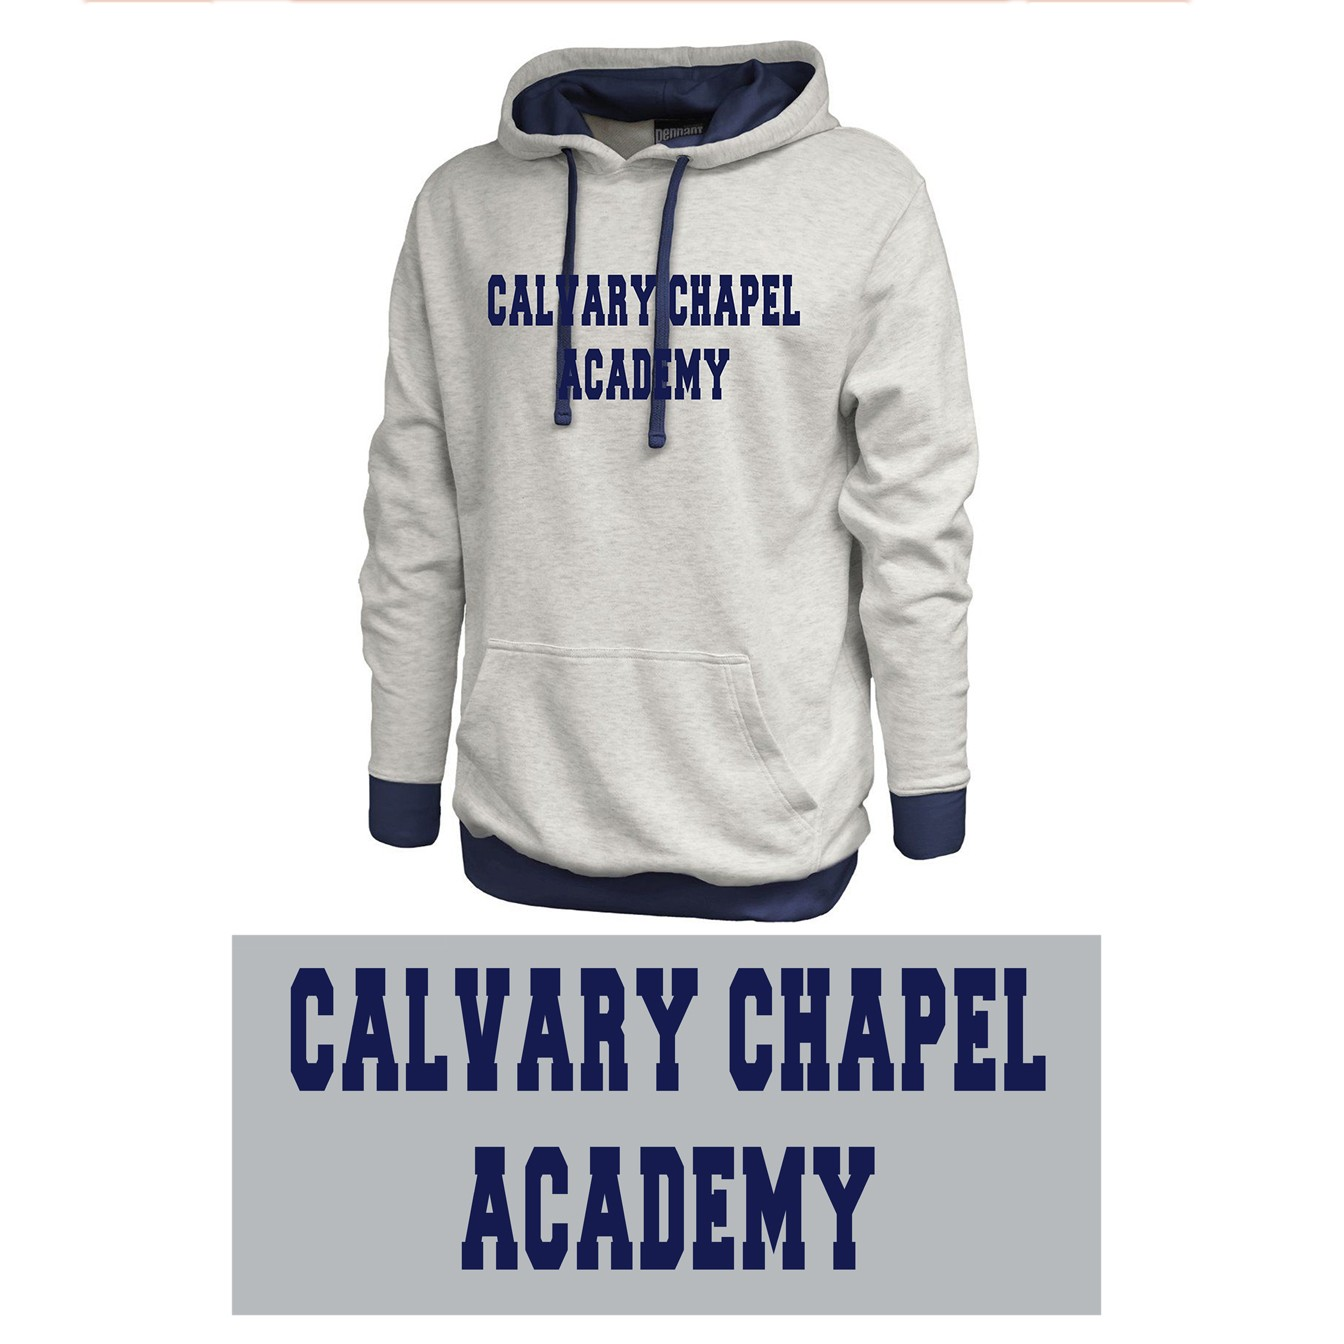 Calvary Chapel Academy Pennant Sportswear Vintage White & Navy Hoodie, Adult Sizing